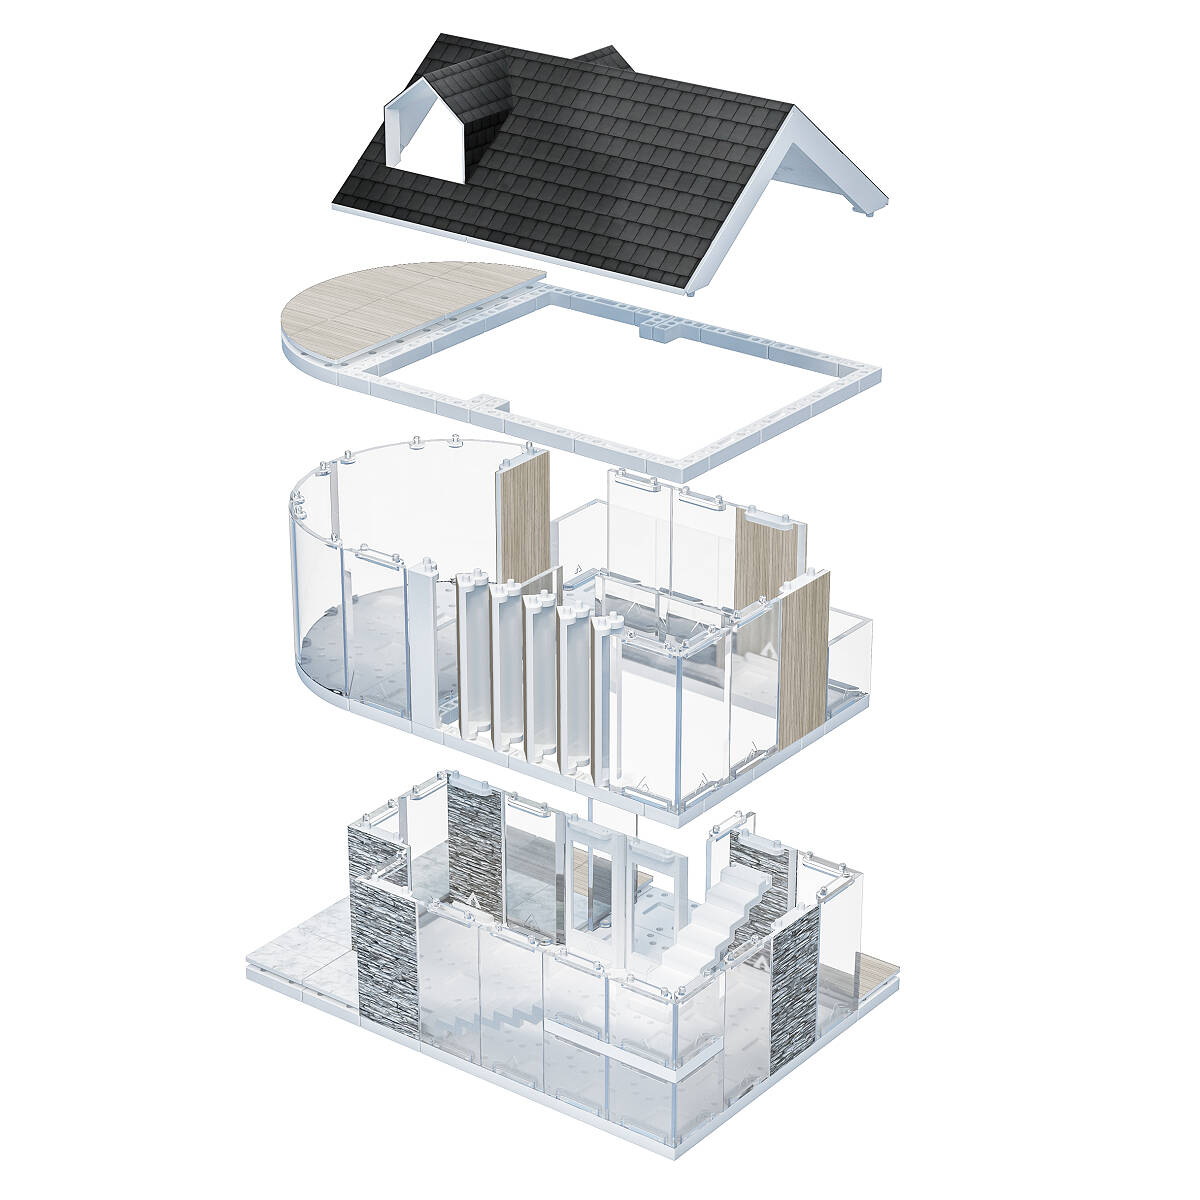 Architecture Design Kit architectural model and design kit | model kits, model building